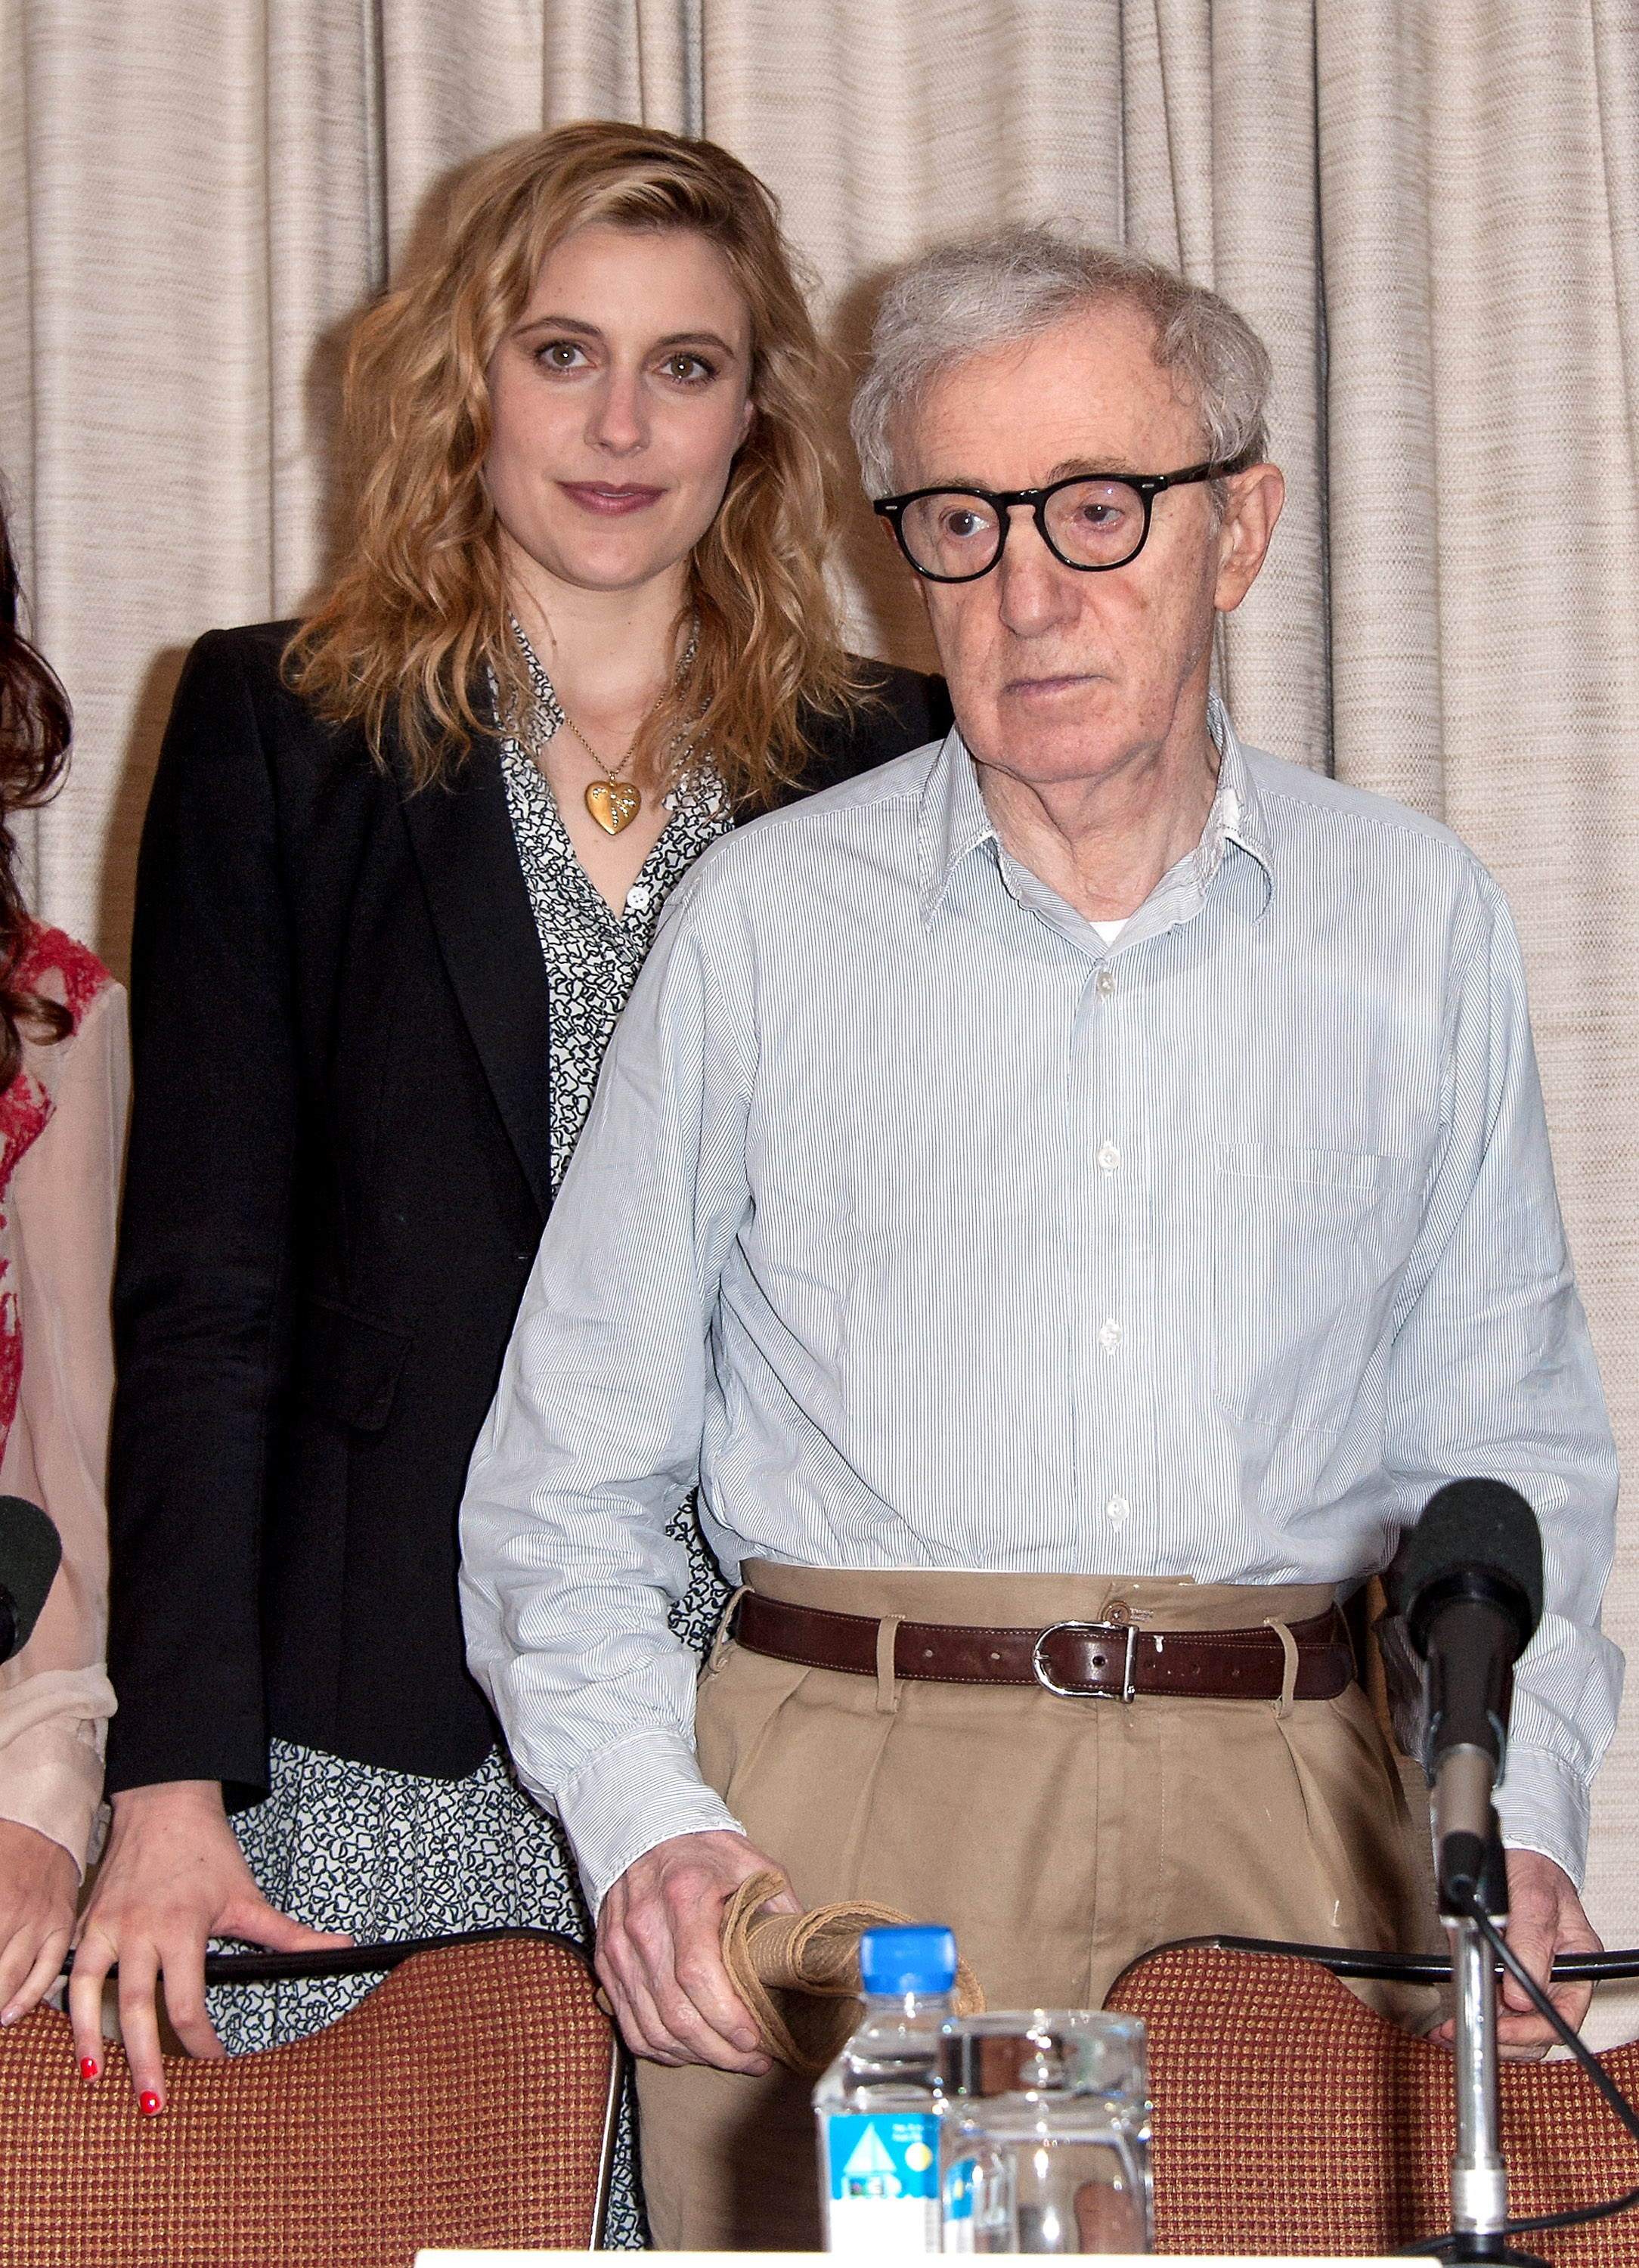 Greta Gerwig (L) and Woody Allen attend the  To Rome With Love  press conference at the Loews Regency Hotel Ballroom on June 19, 2012 in New York City.  (Photo by D Dipasupil/FilmMagic)